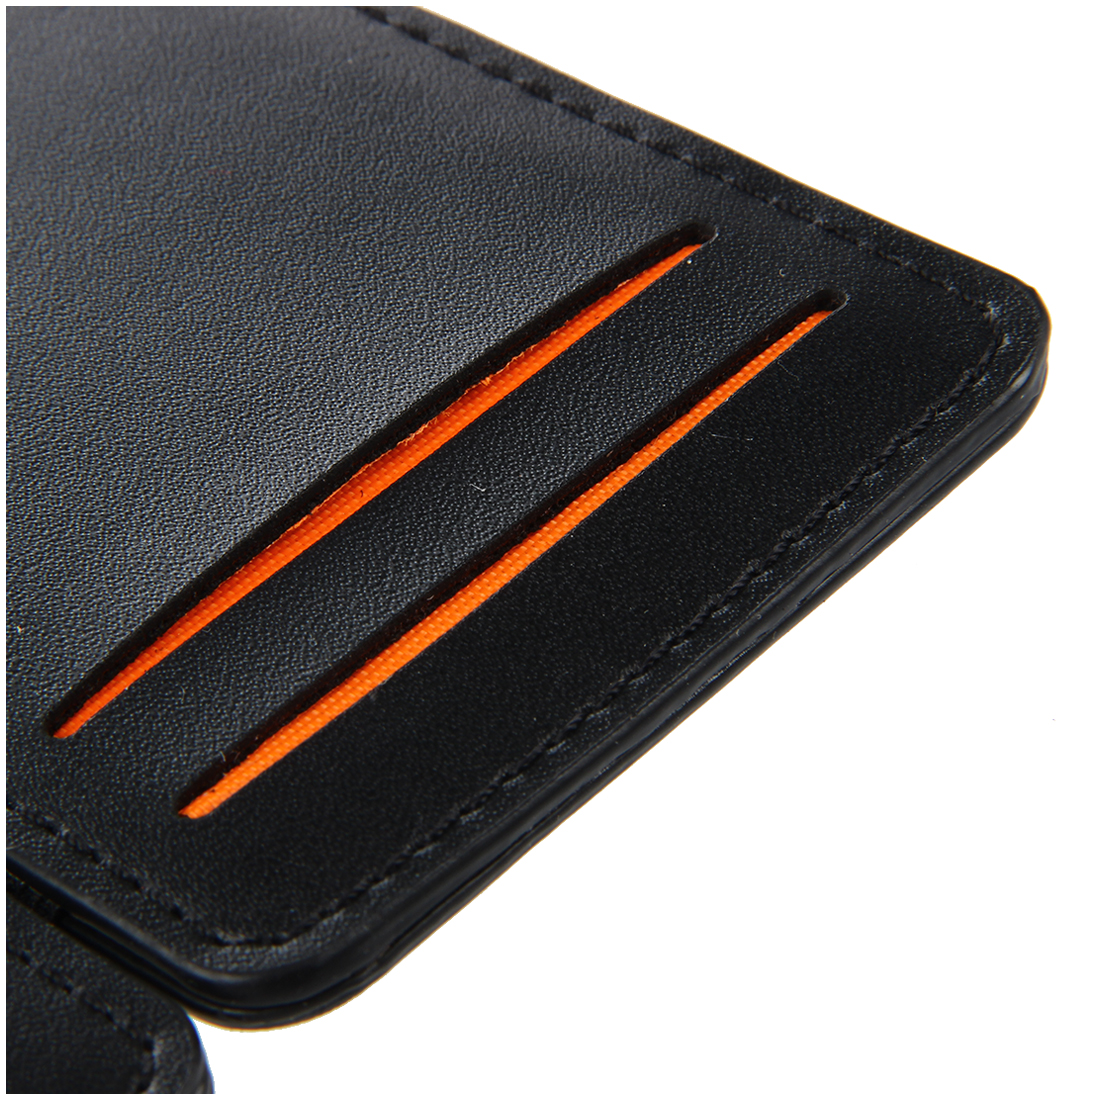 Mens-Magic-Flip-Wallet-Money-Clip-Bifold-Slim-Credit-Card-Holder-Purse-A7M7 thumbnail 8